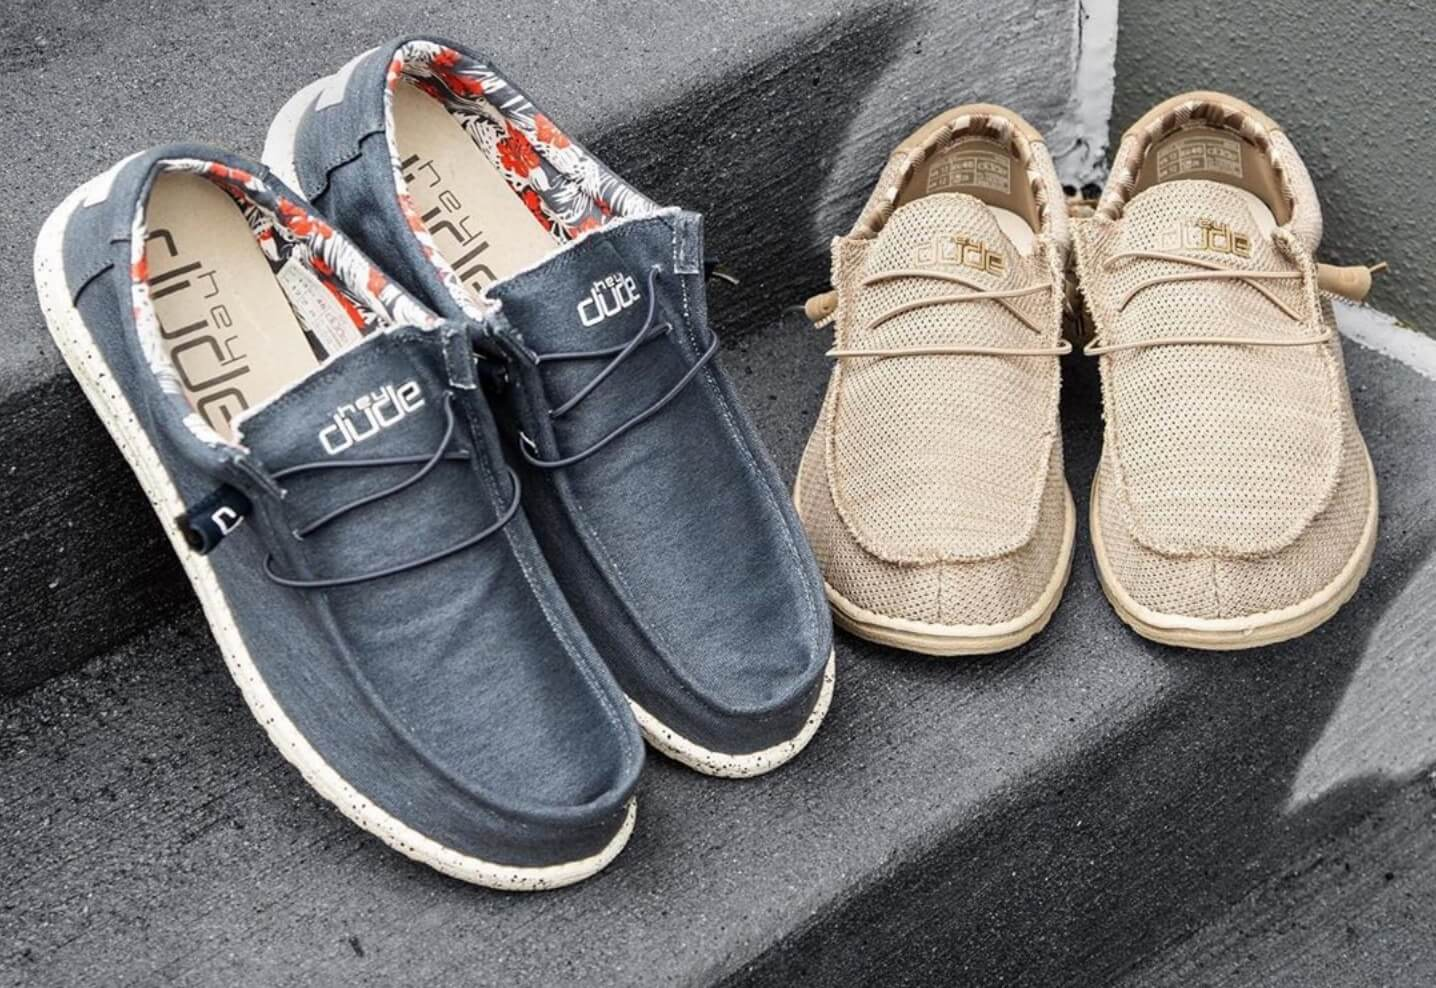 Photo of Hey Dude brand shoes in navy and tan